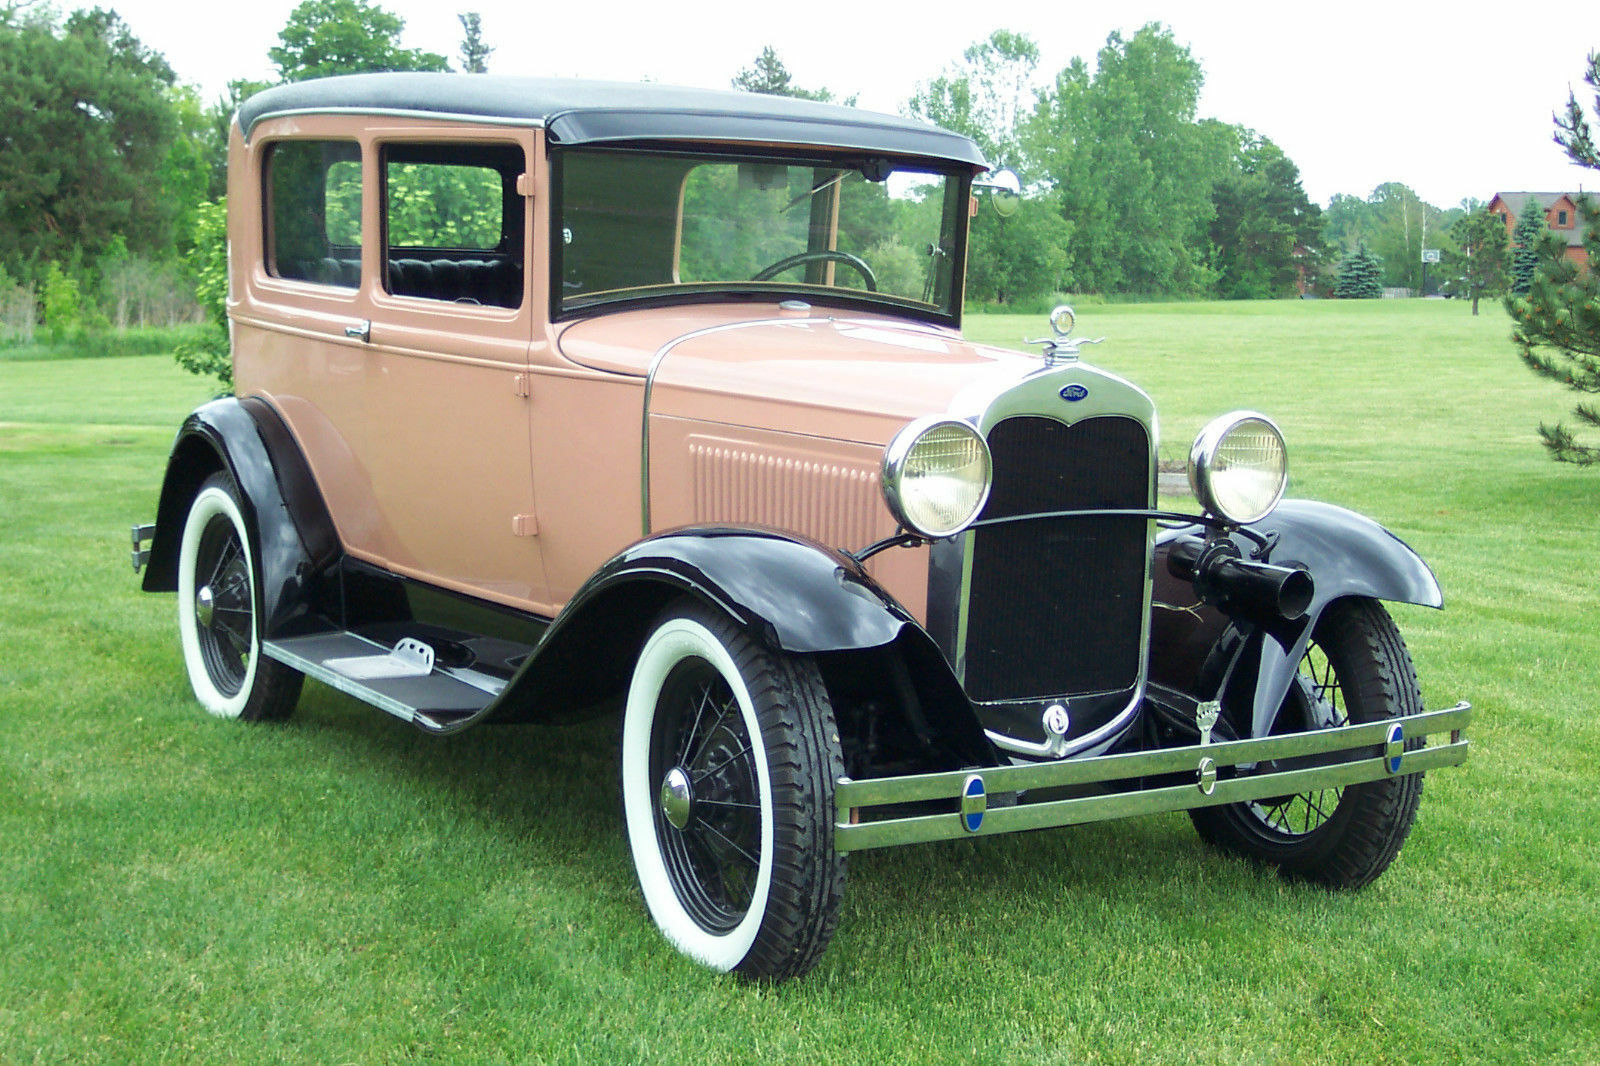 Best Suvs together with Friday Fun Thread Ugly Cars Of 1970s in addition 391869246595 as well Lego Ww2 additionally Pd 900. on all american made cars list